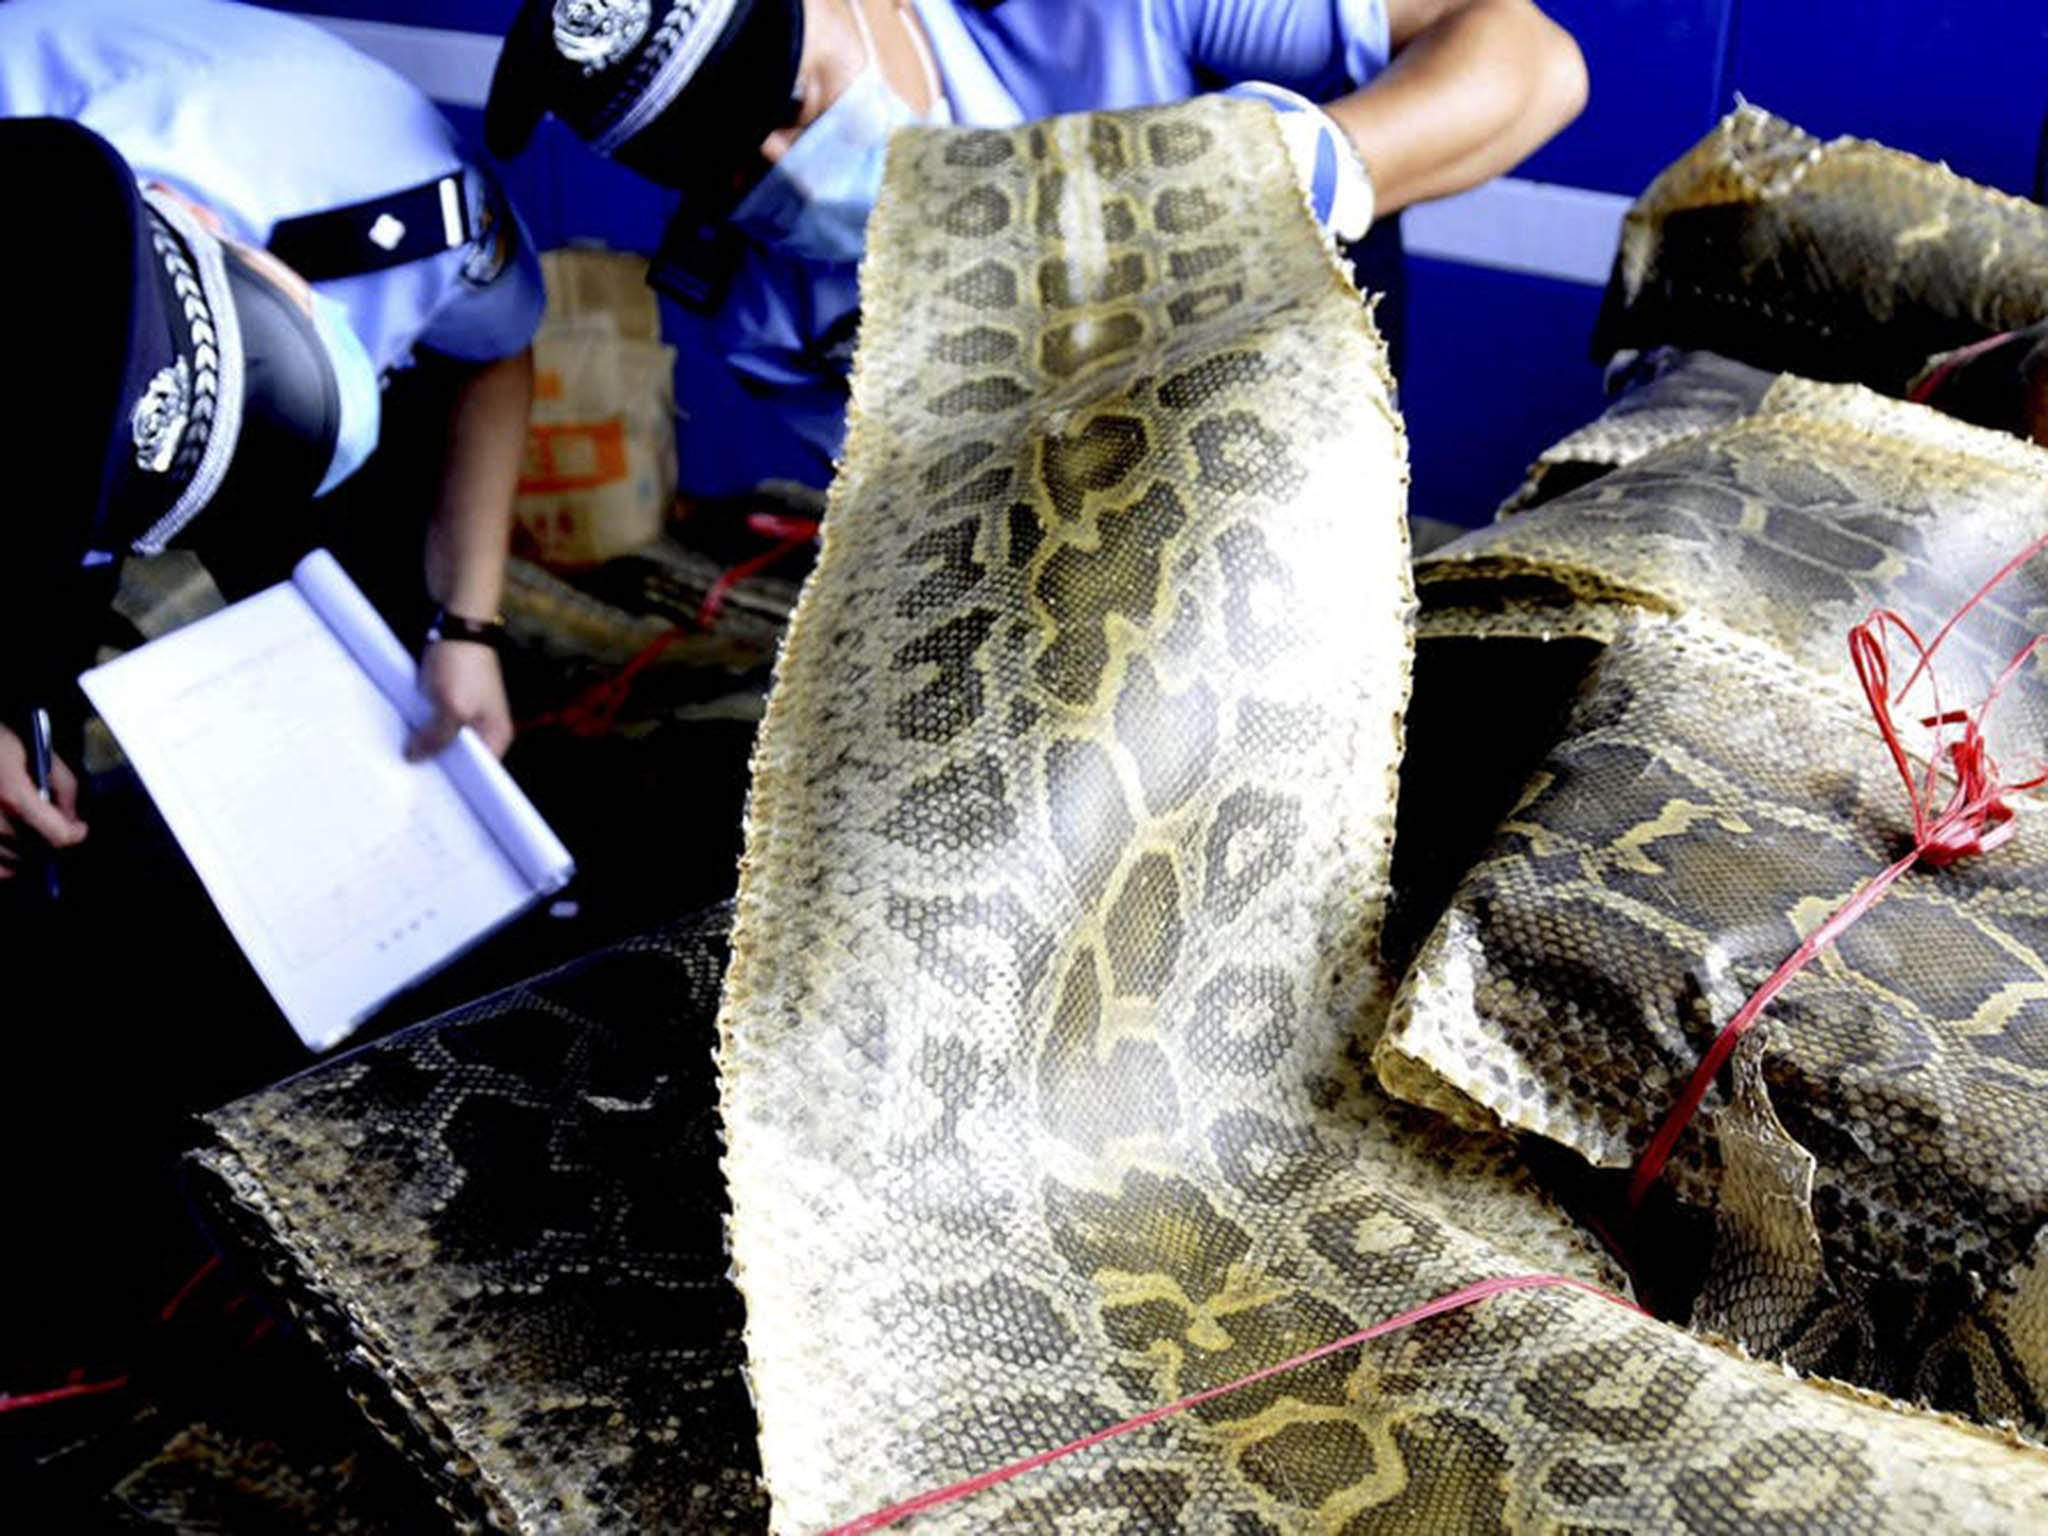 Cash to combat illegal poaching and trade of wildlife in developing countries